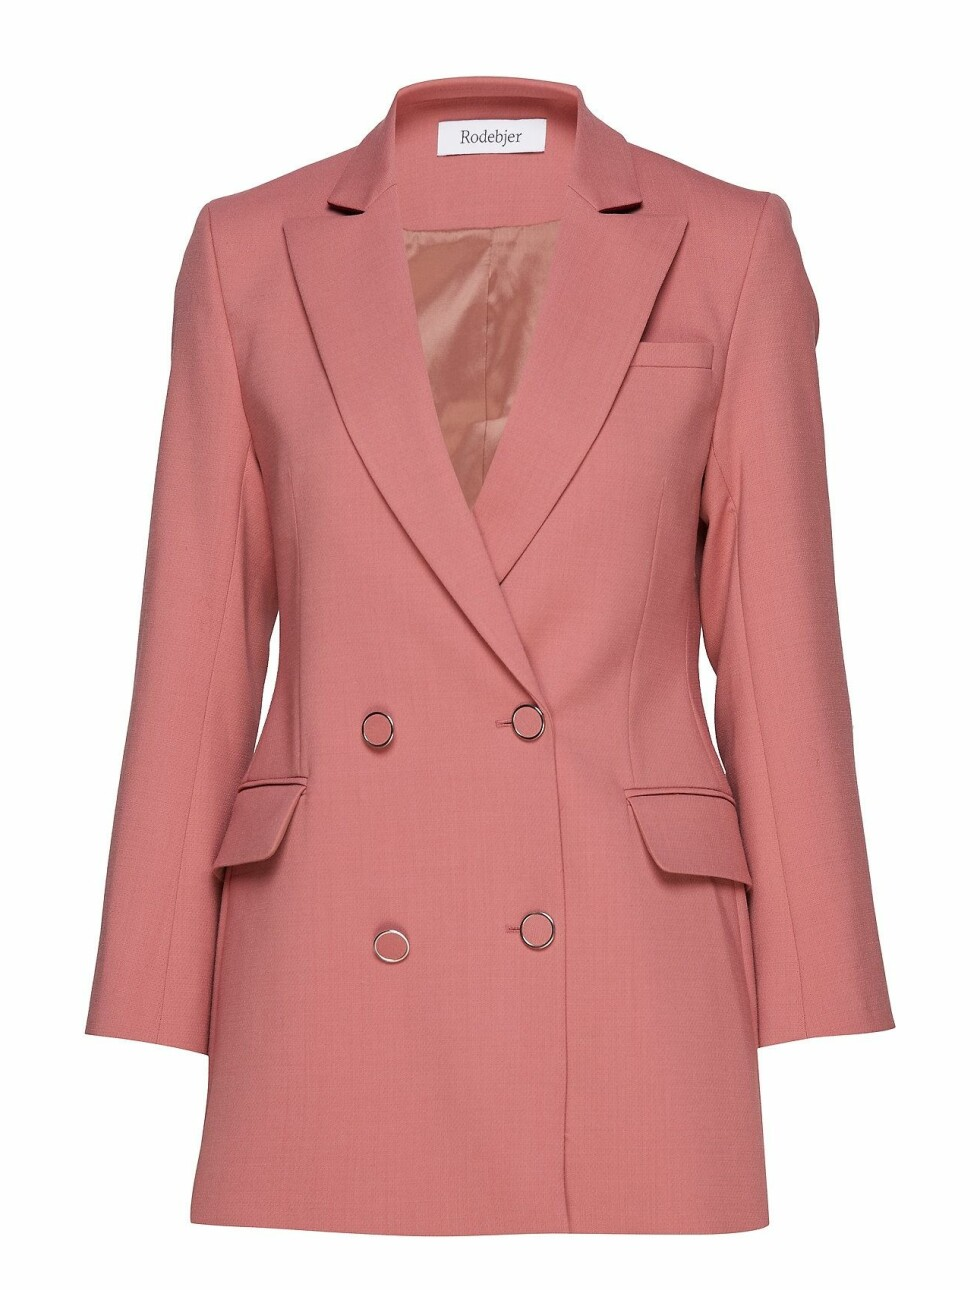 Blazer fra Rodebjer |4795,-| https://www.boozt.com/no/no/rodebjer/nera_18794687/18794692?navId=60743&group=search_brand&position=1000000